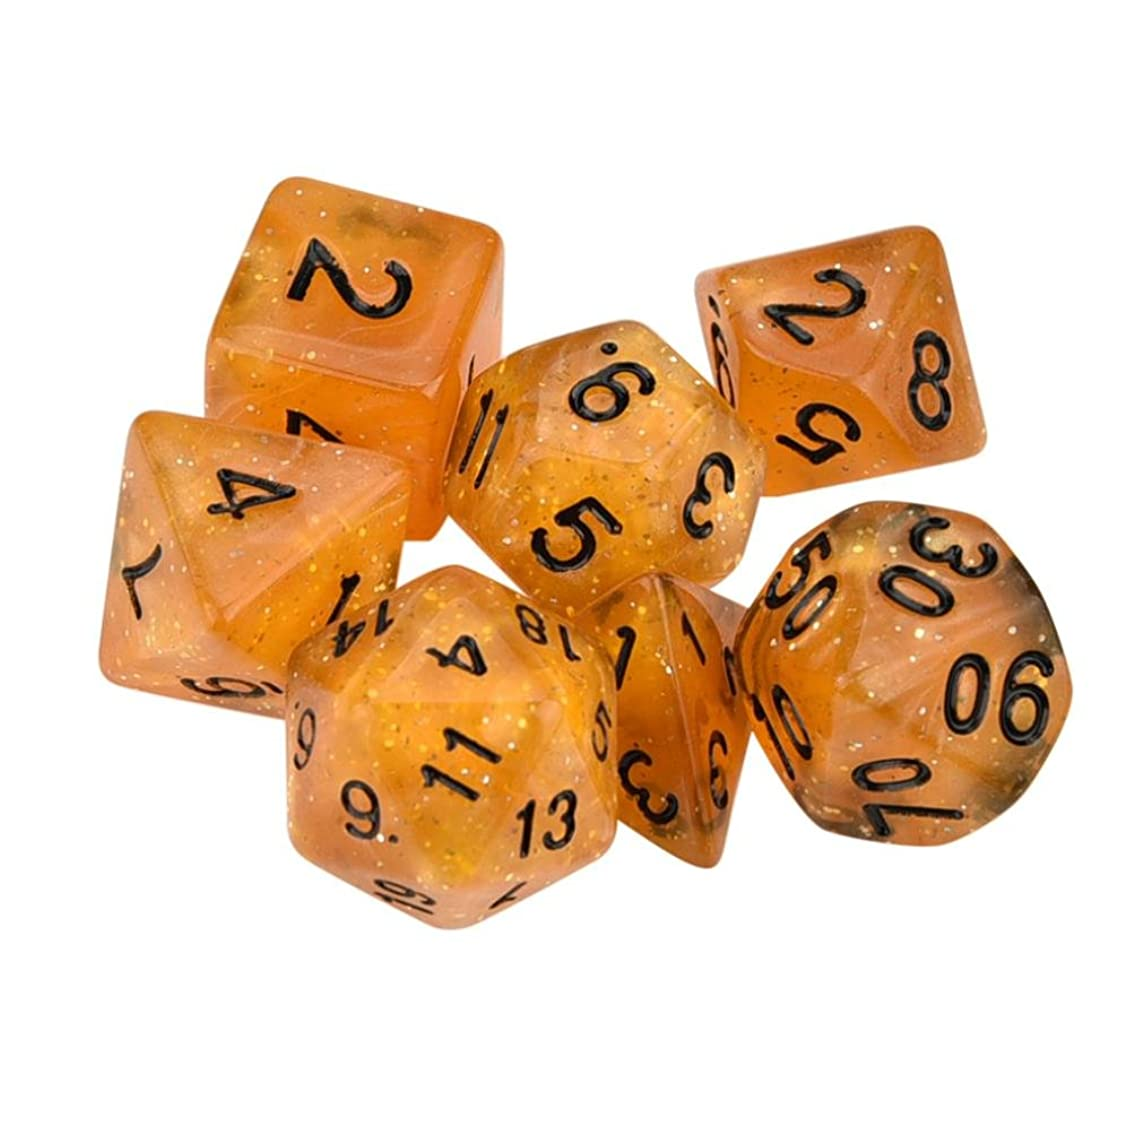 Gbell TRPG Game Dungeons & Dragons Polyhedral D4-D20 Multi Sided Acrylic Dice for Kids Adults 7pcs/Set (Orange)